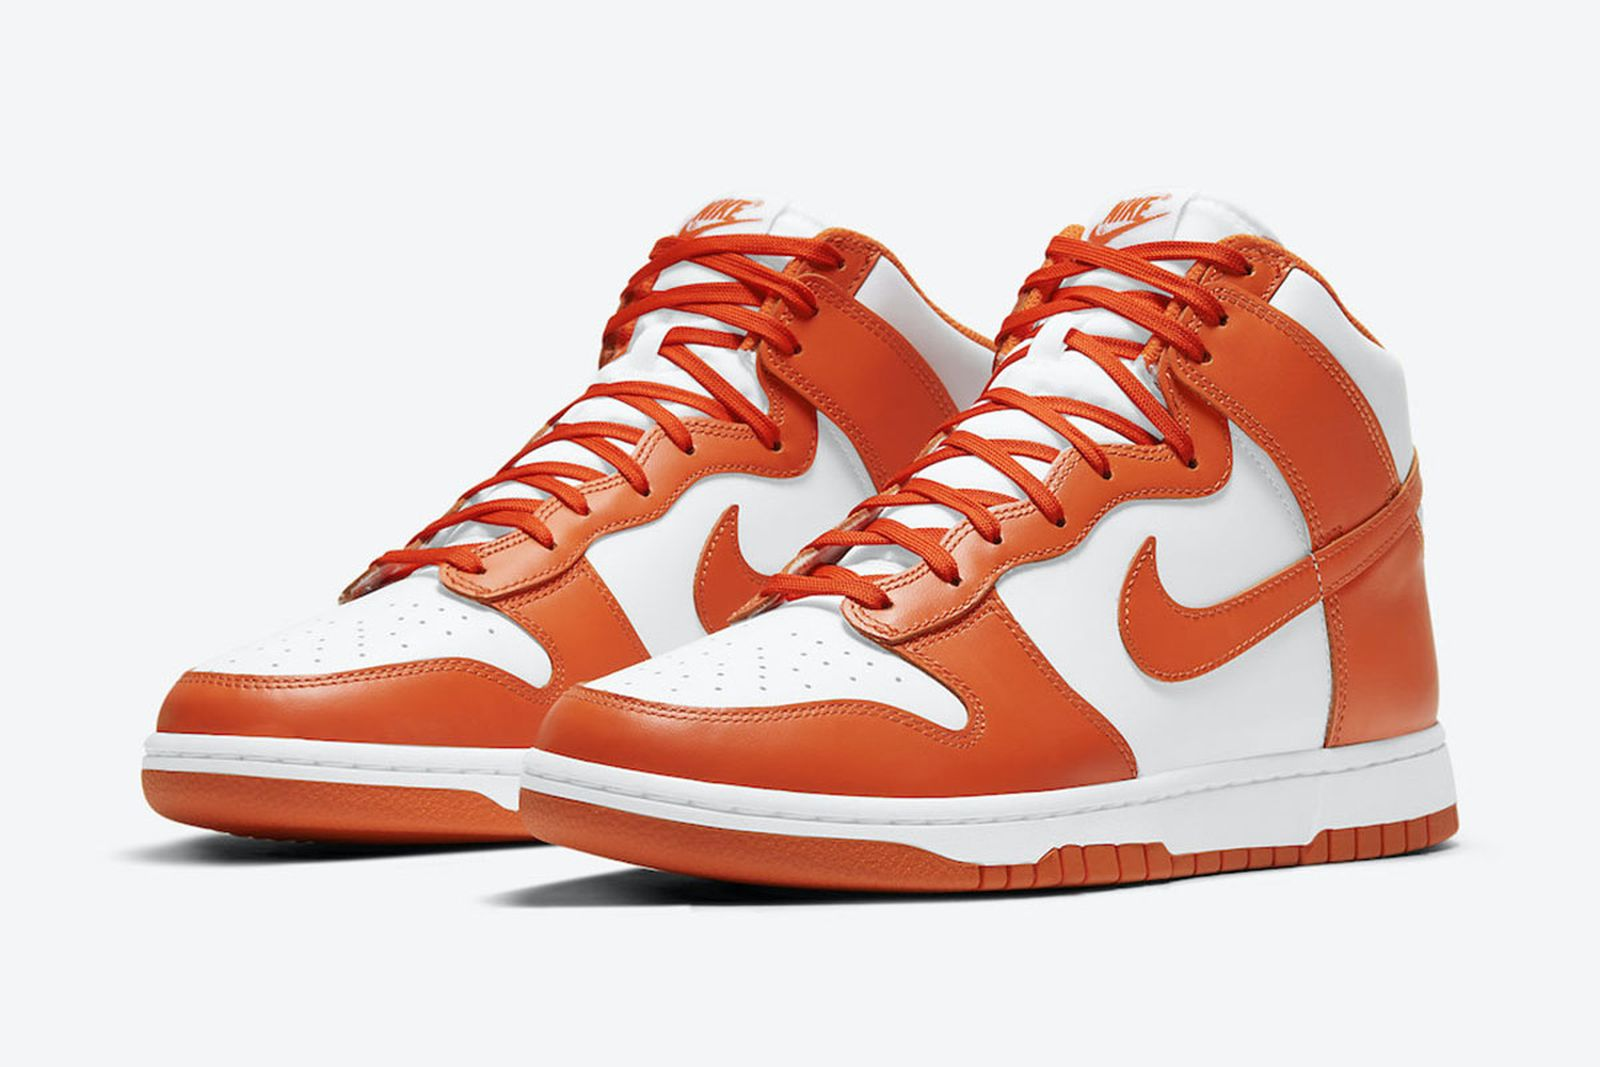 nike-dunk-high-syracuse-release-date-price-02